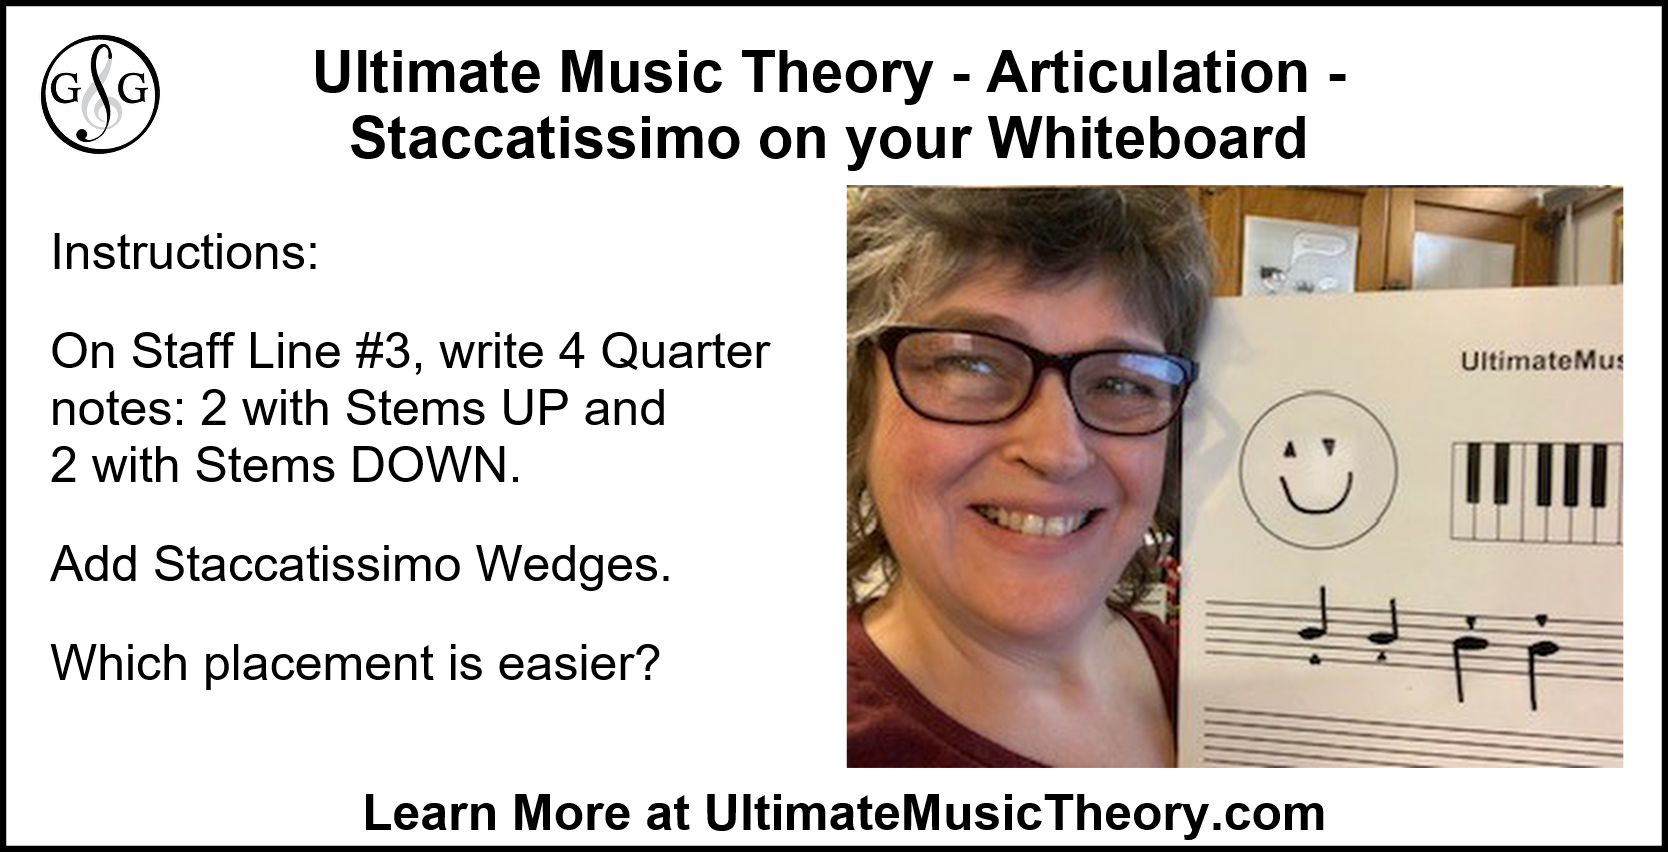 UMT Articulation on your Whiteboard